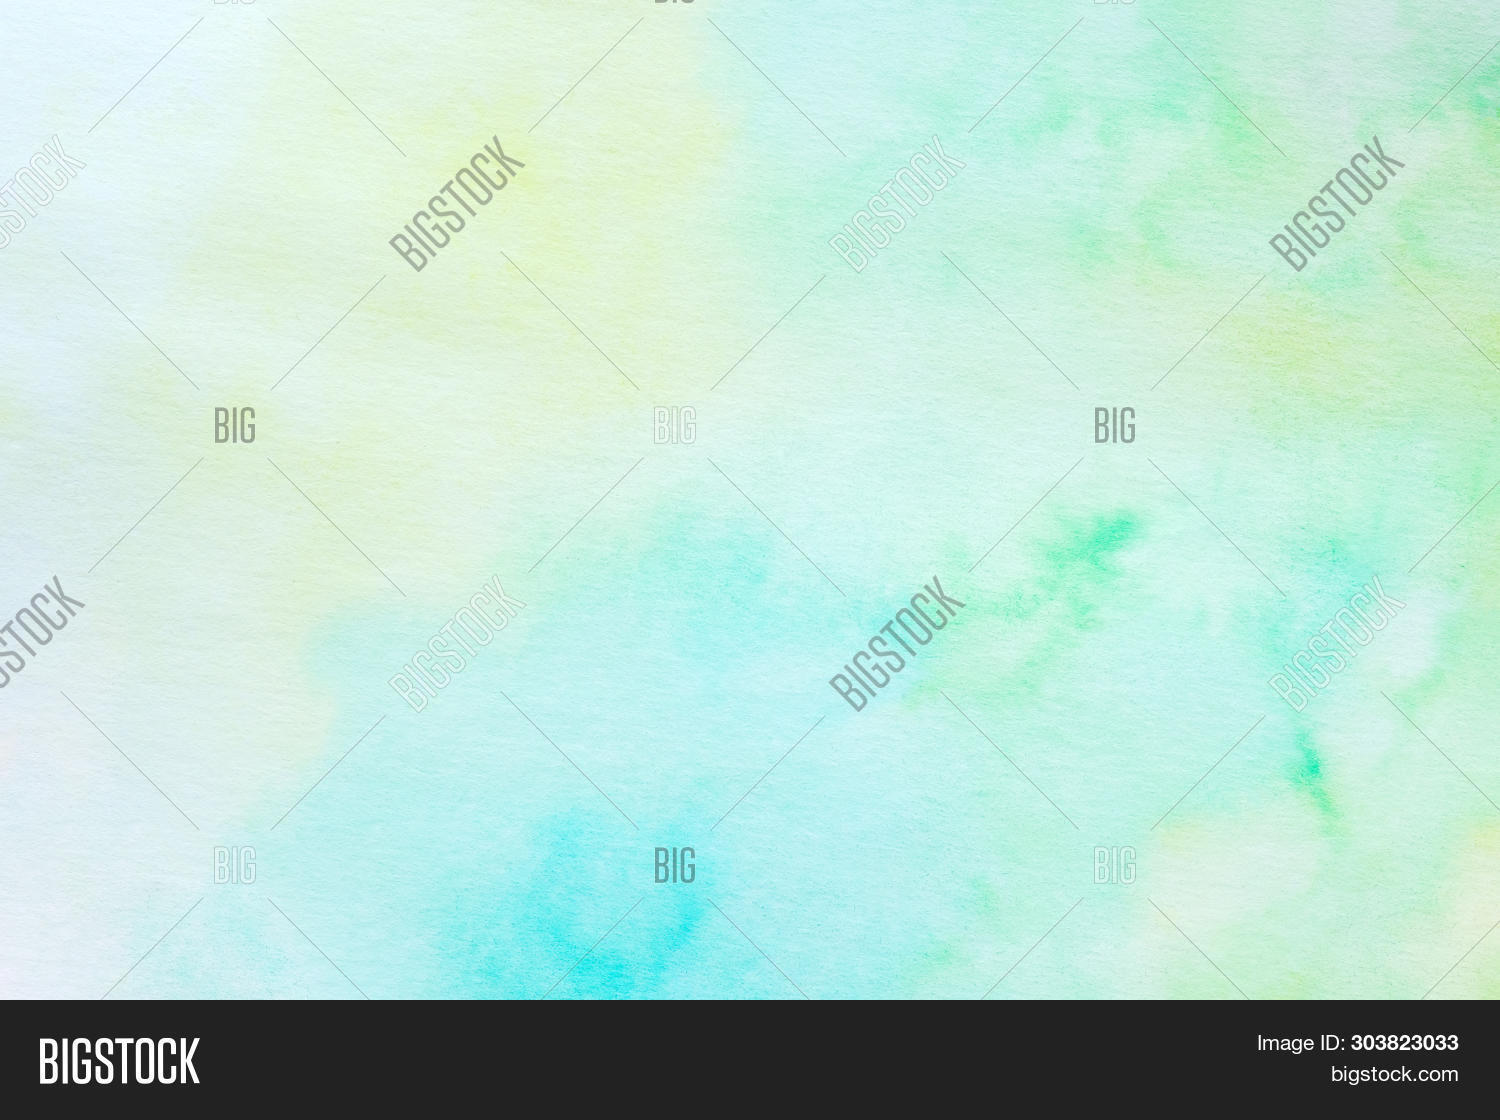 abstract,art,artistic,backdrop,background,banner,blank,blue,bright,brush,color,design,drawing,element,freshness,graphic,green,paint,paper,pattern,sky,space,splash,spring,stain,summer,template,texture,textured,wallpaper,watercolor,white,yellow